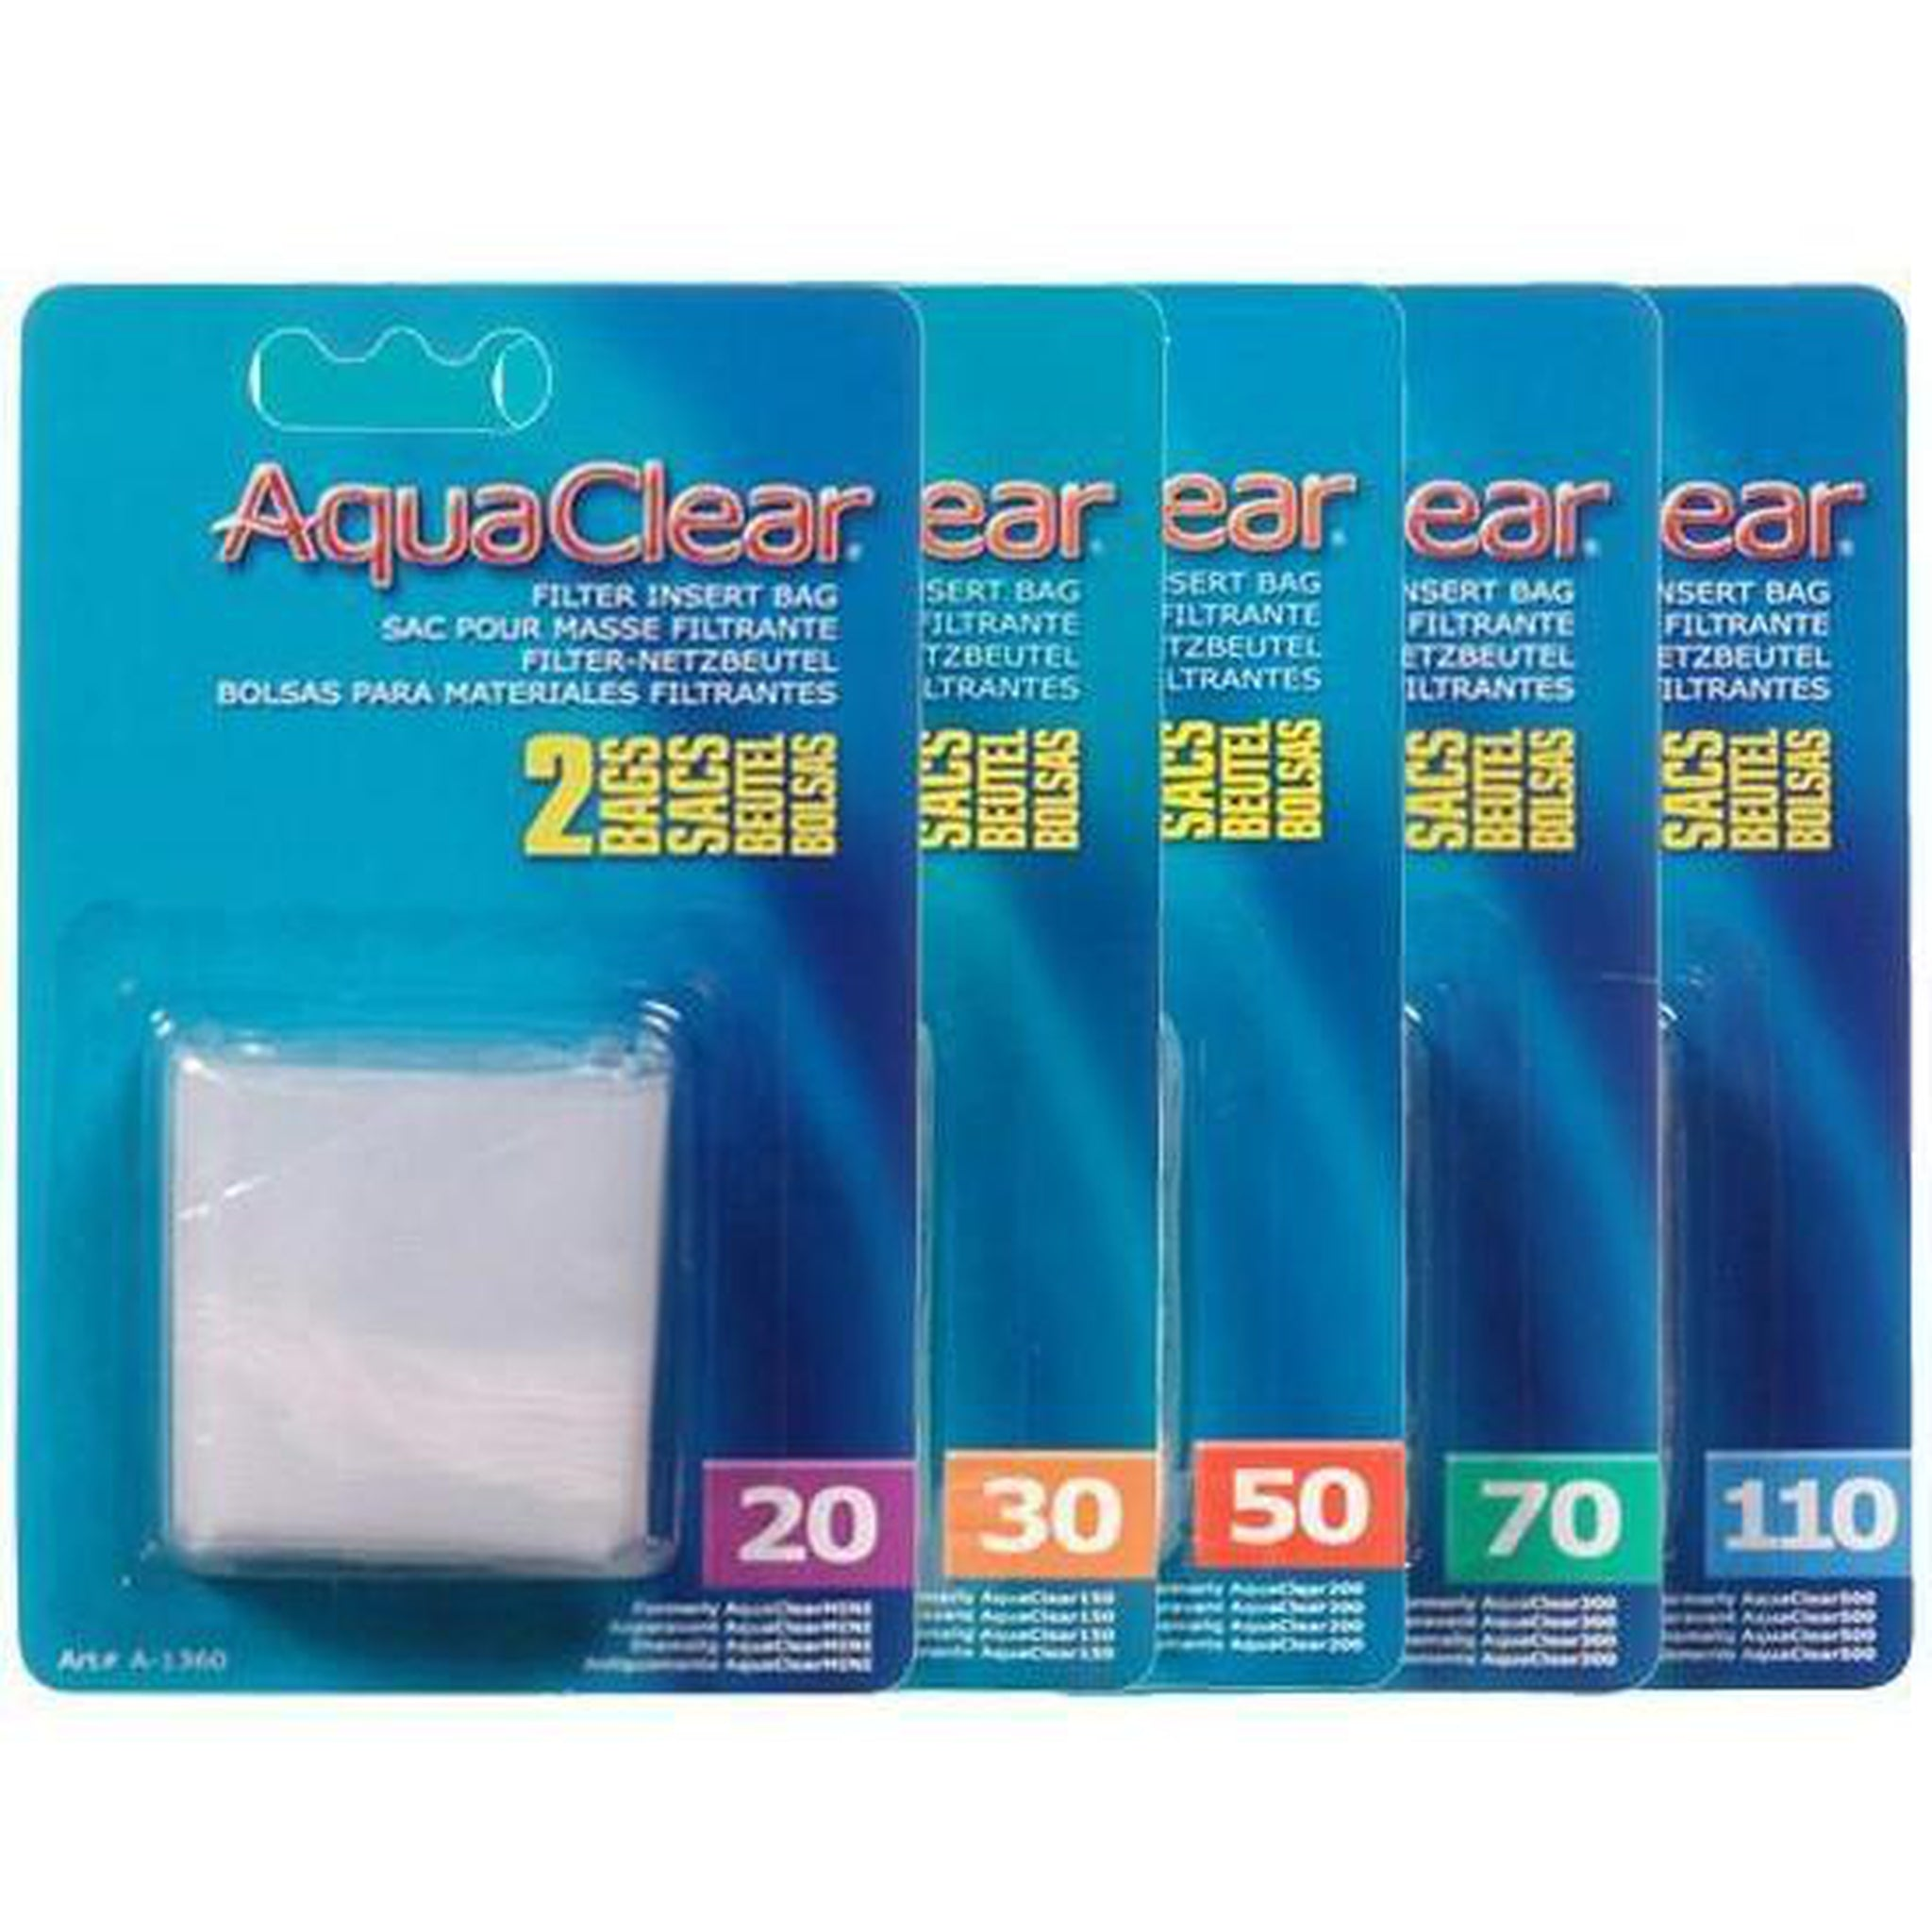 AquaClear 20 Media Bag